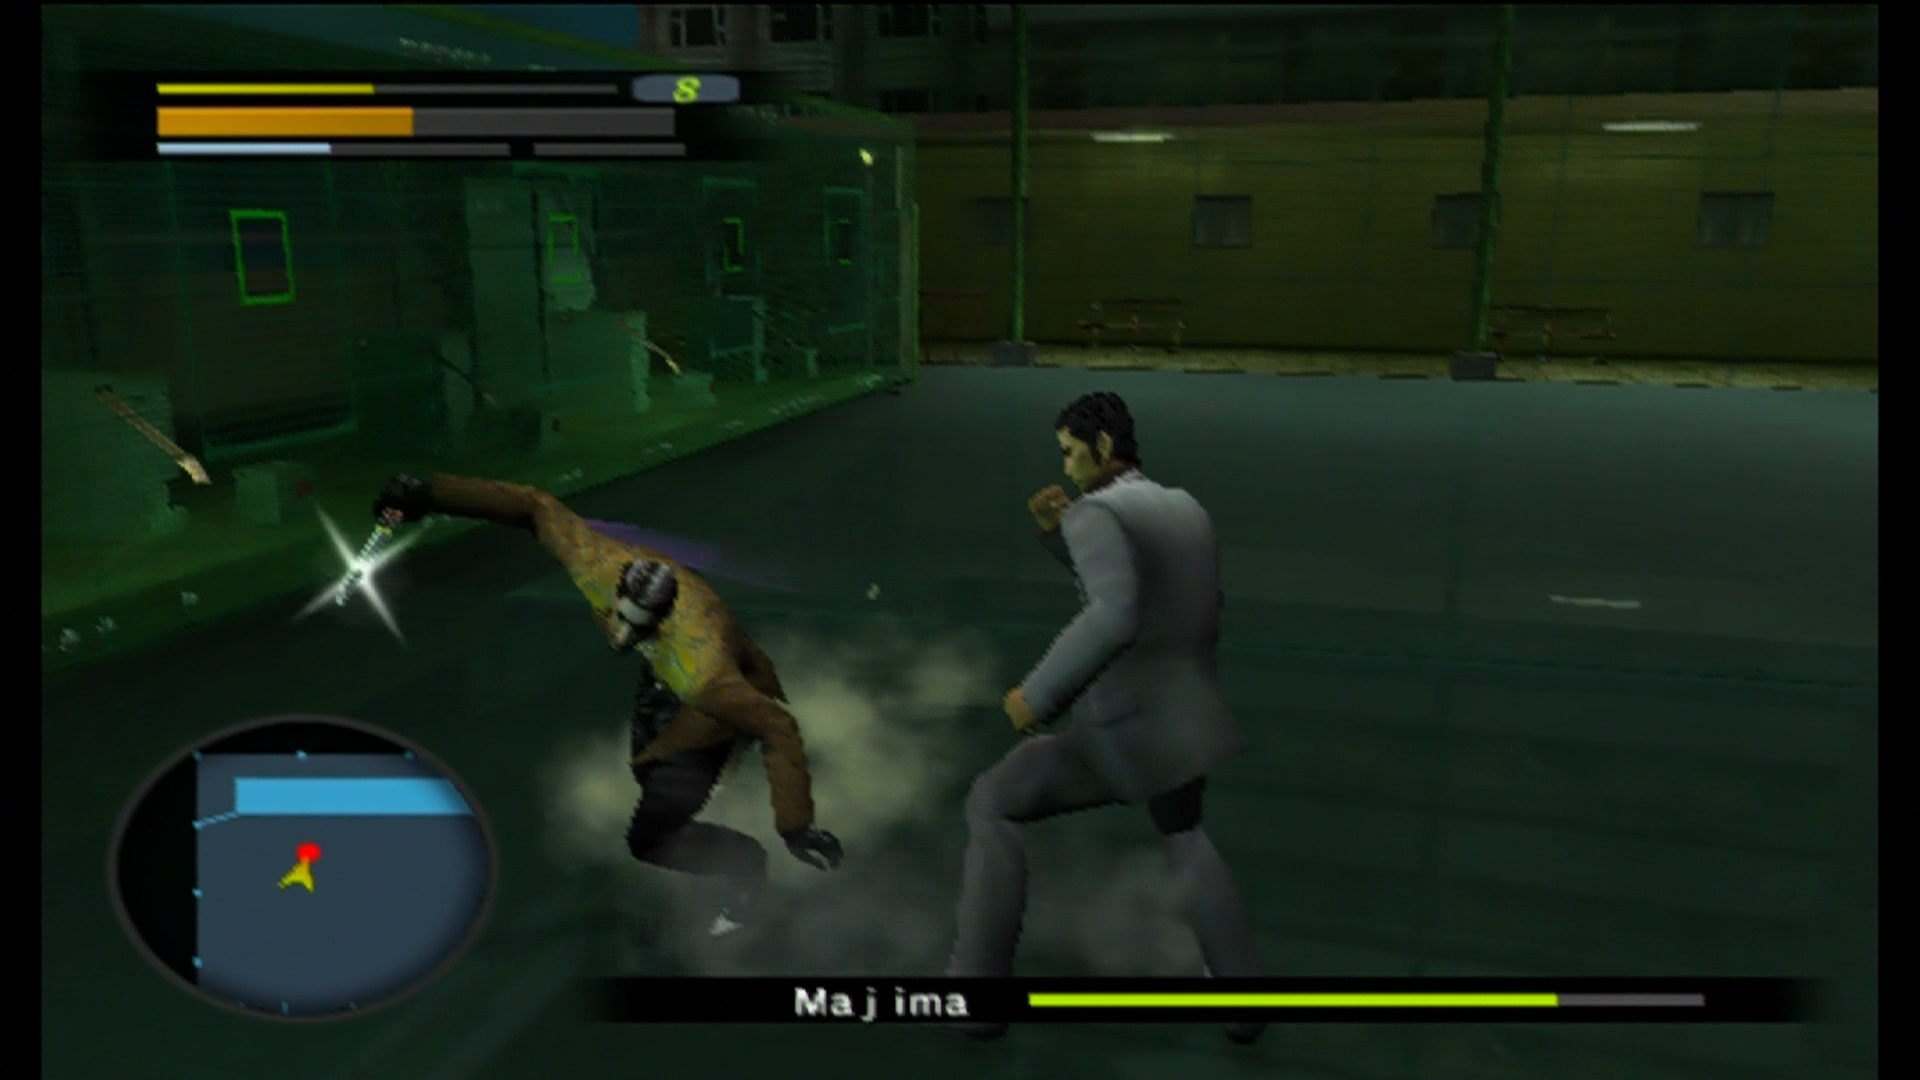 Retro Gaming Like A Dragon Part 01 Yakuza 2005 Three Voices Media Sony Ps4 0 Zero R1 In The Later Games Majima Becomes More Sympathetic And Much Sillier Character But Here Hes Basically Just Psychotic Villain Genuinely